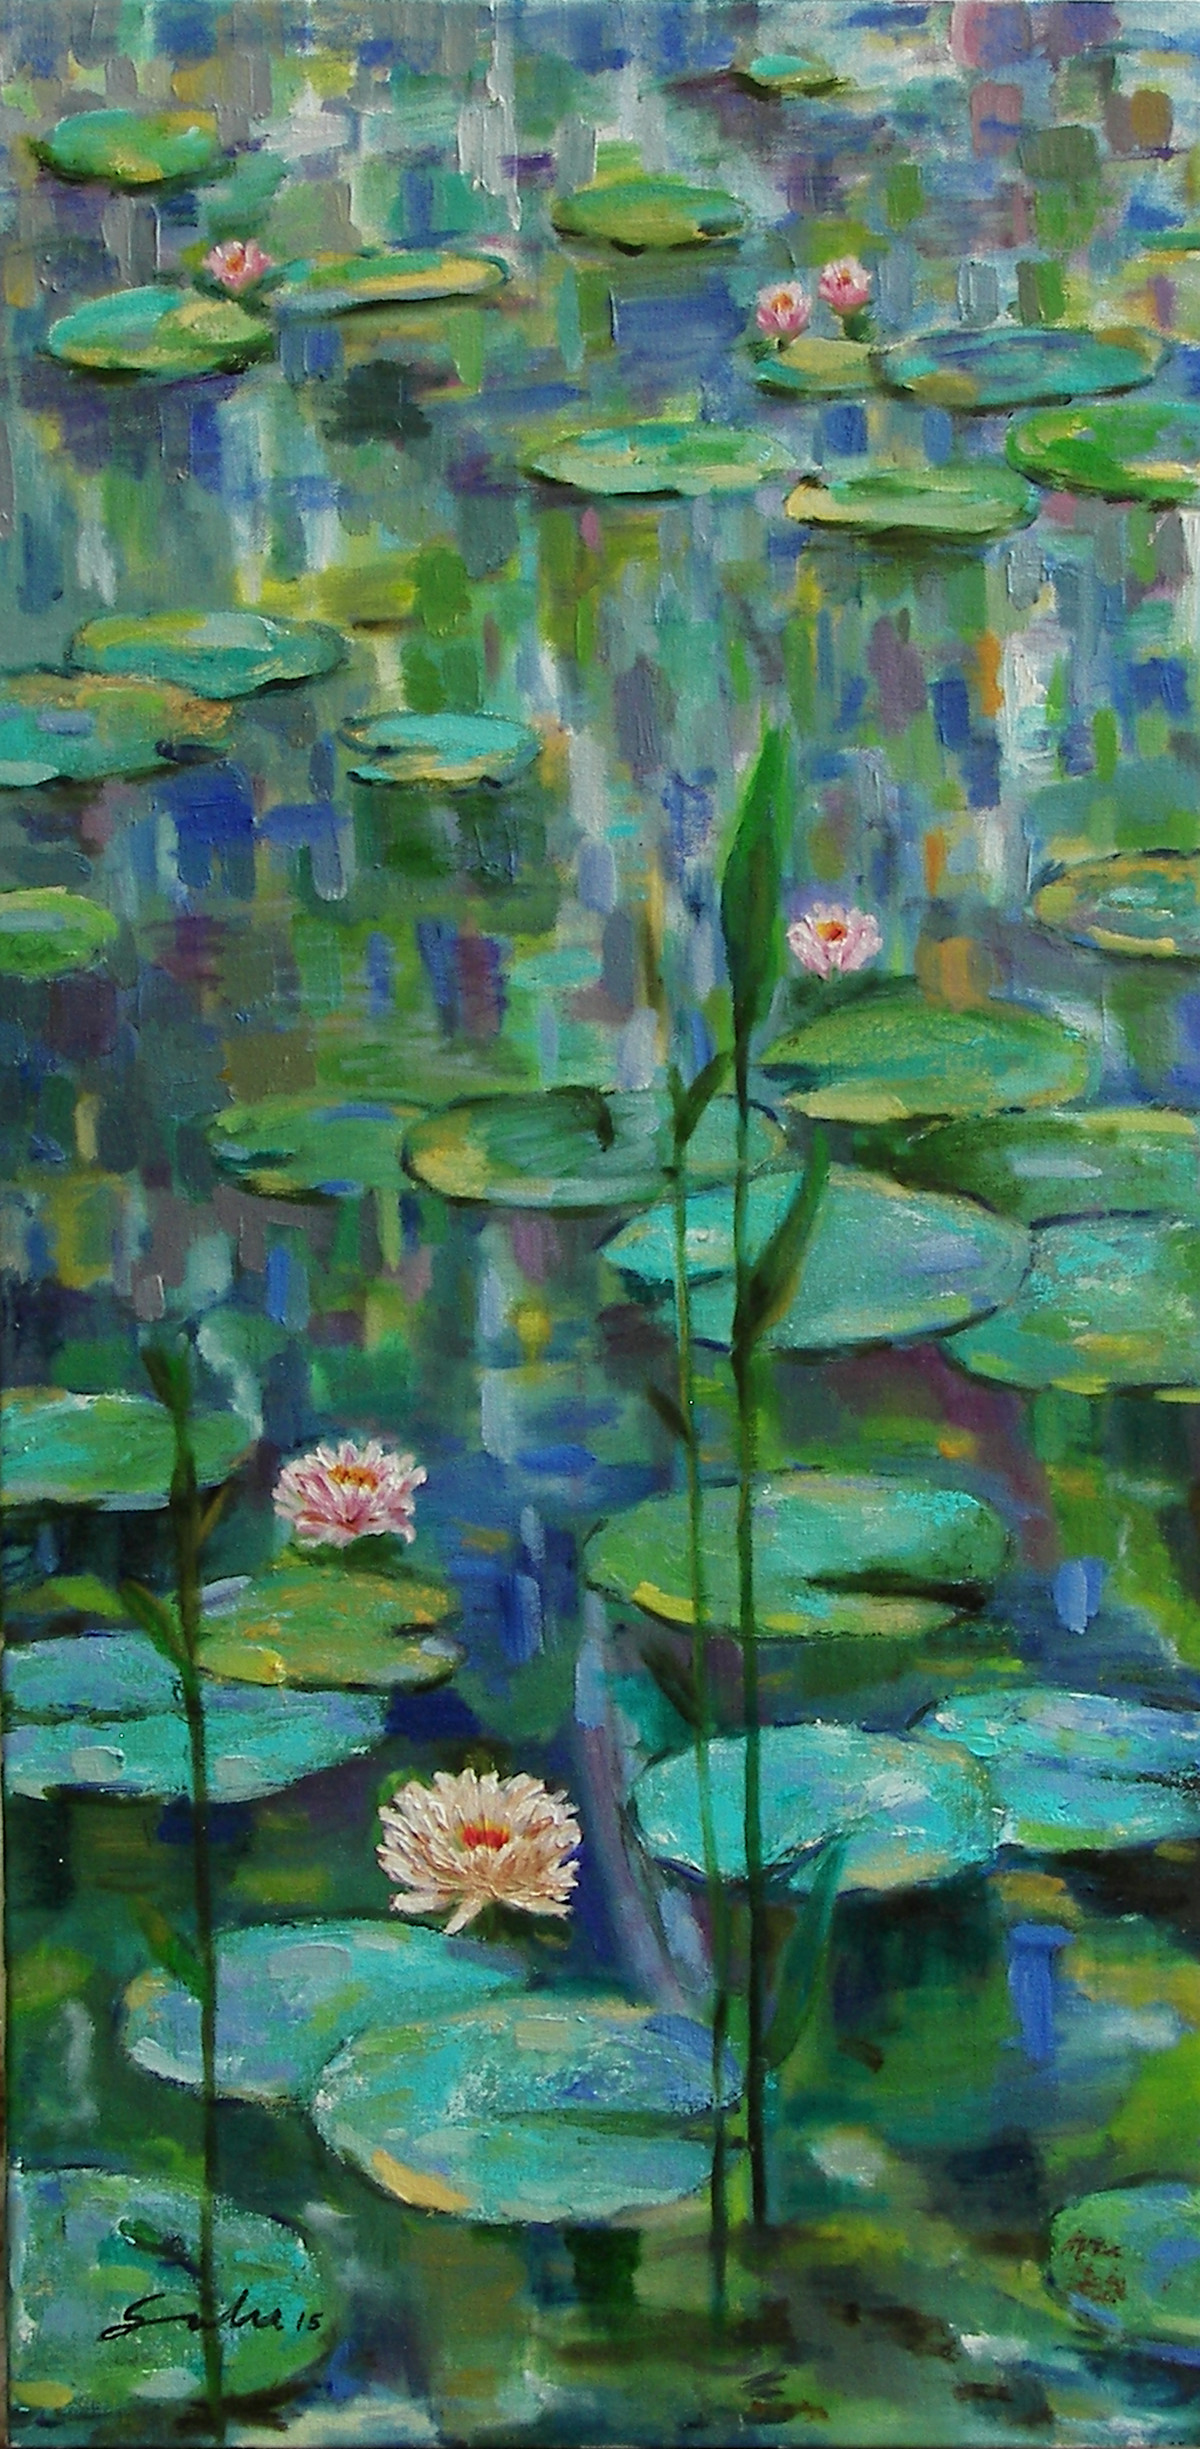 Water Lilies-4 by Sulakshana Dharmadhikari, Impressionism Painting, Oil on Canvas, Green color